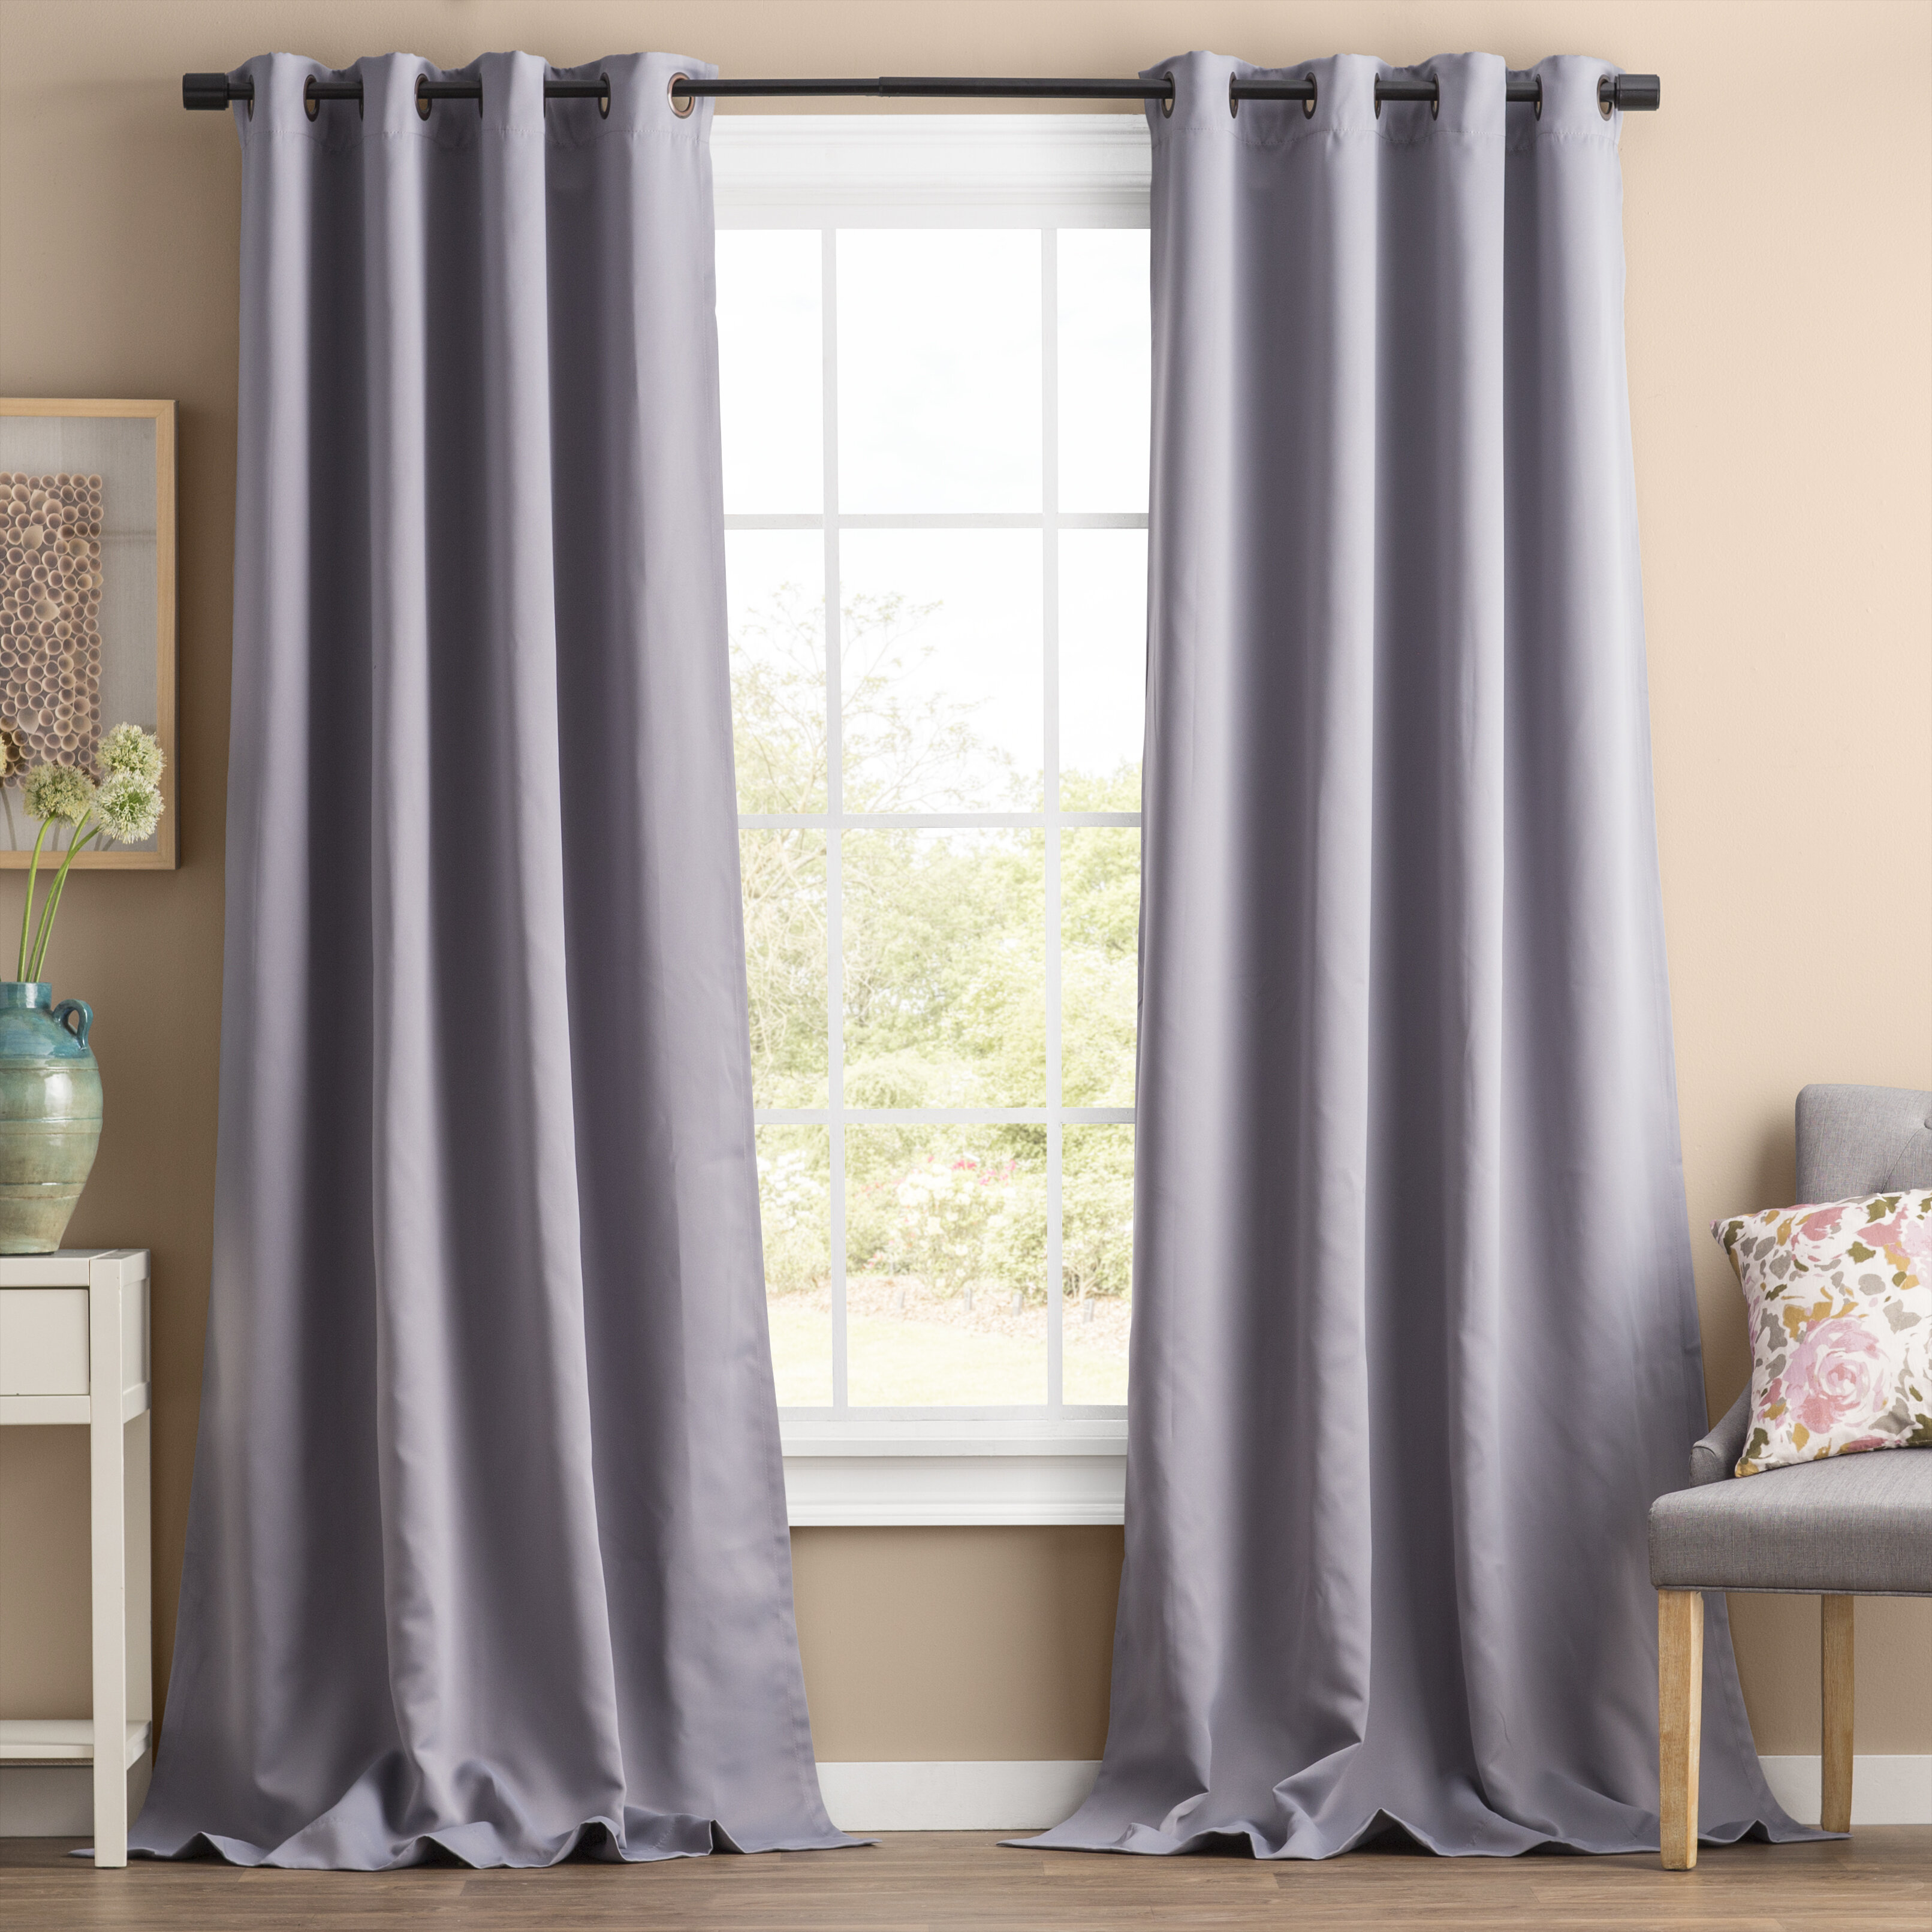 Best Home Fashion Inc Solid Blackout Thermal Grommet 2 Curtains